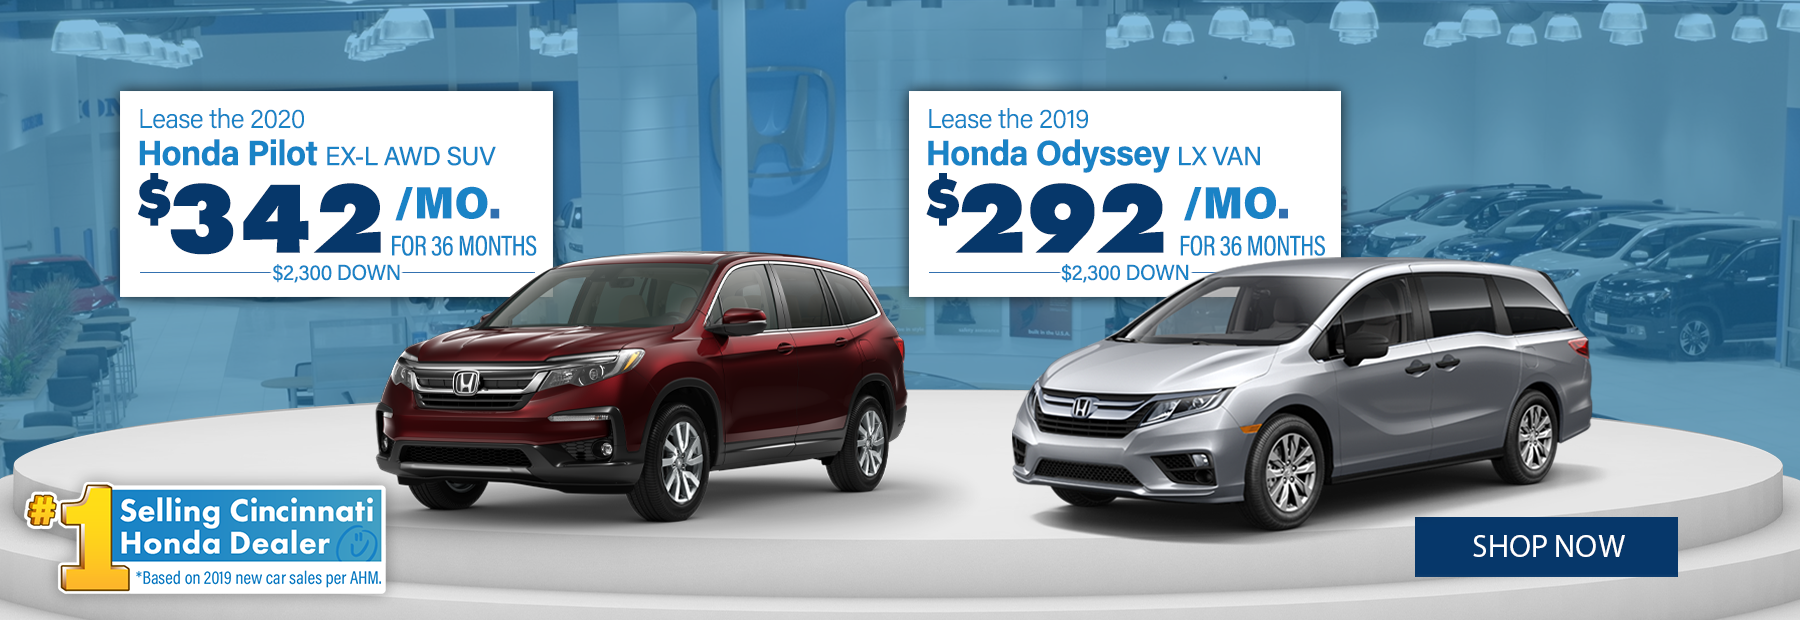 new-honda-pilot-odyssey-lease-deals-cincinnati